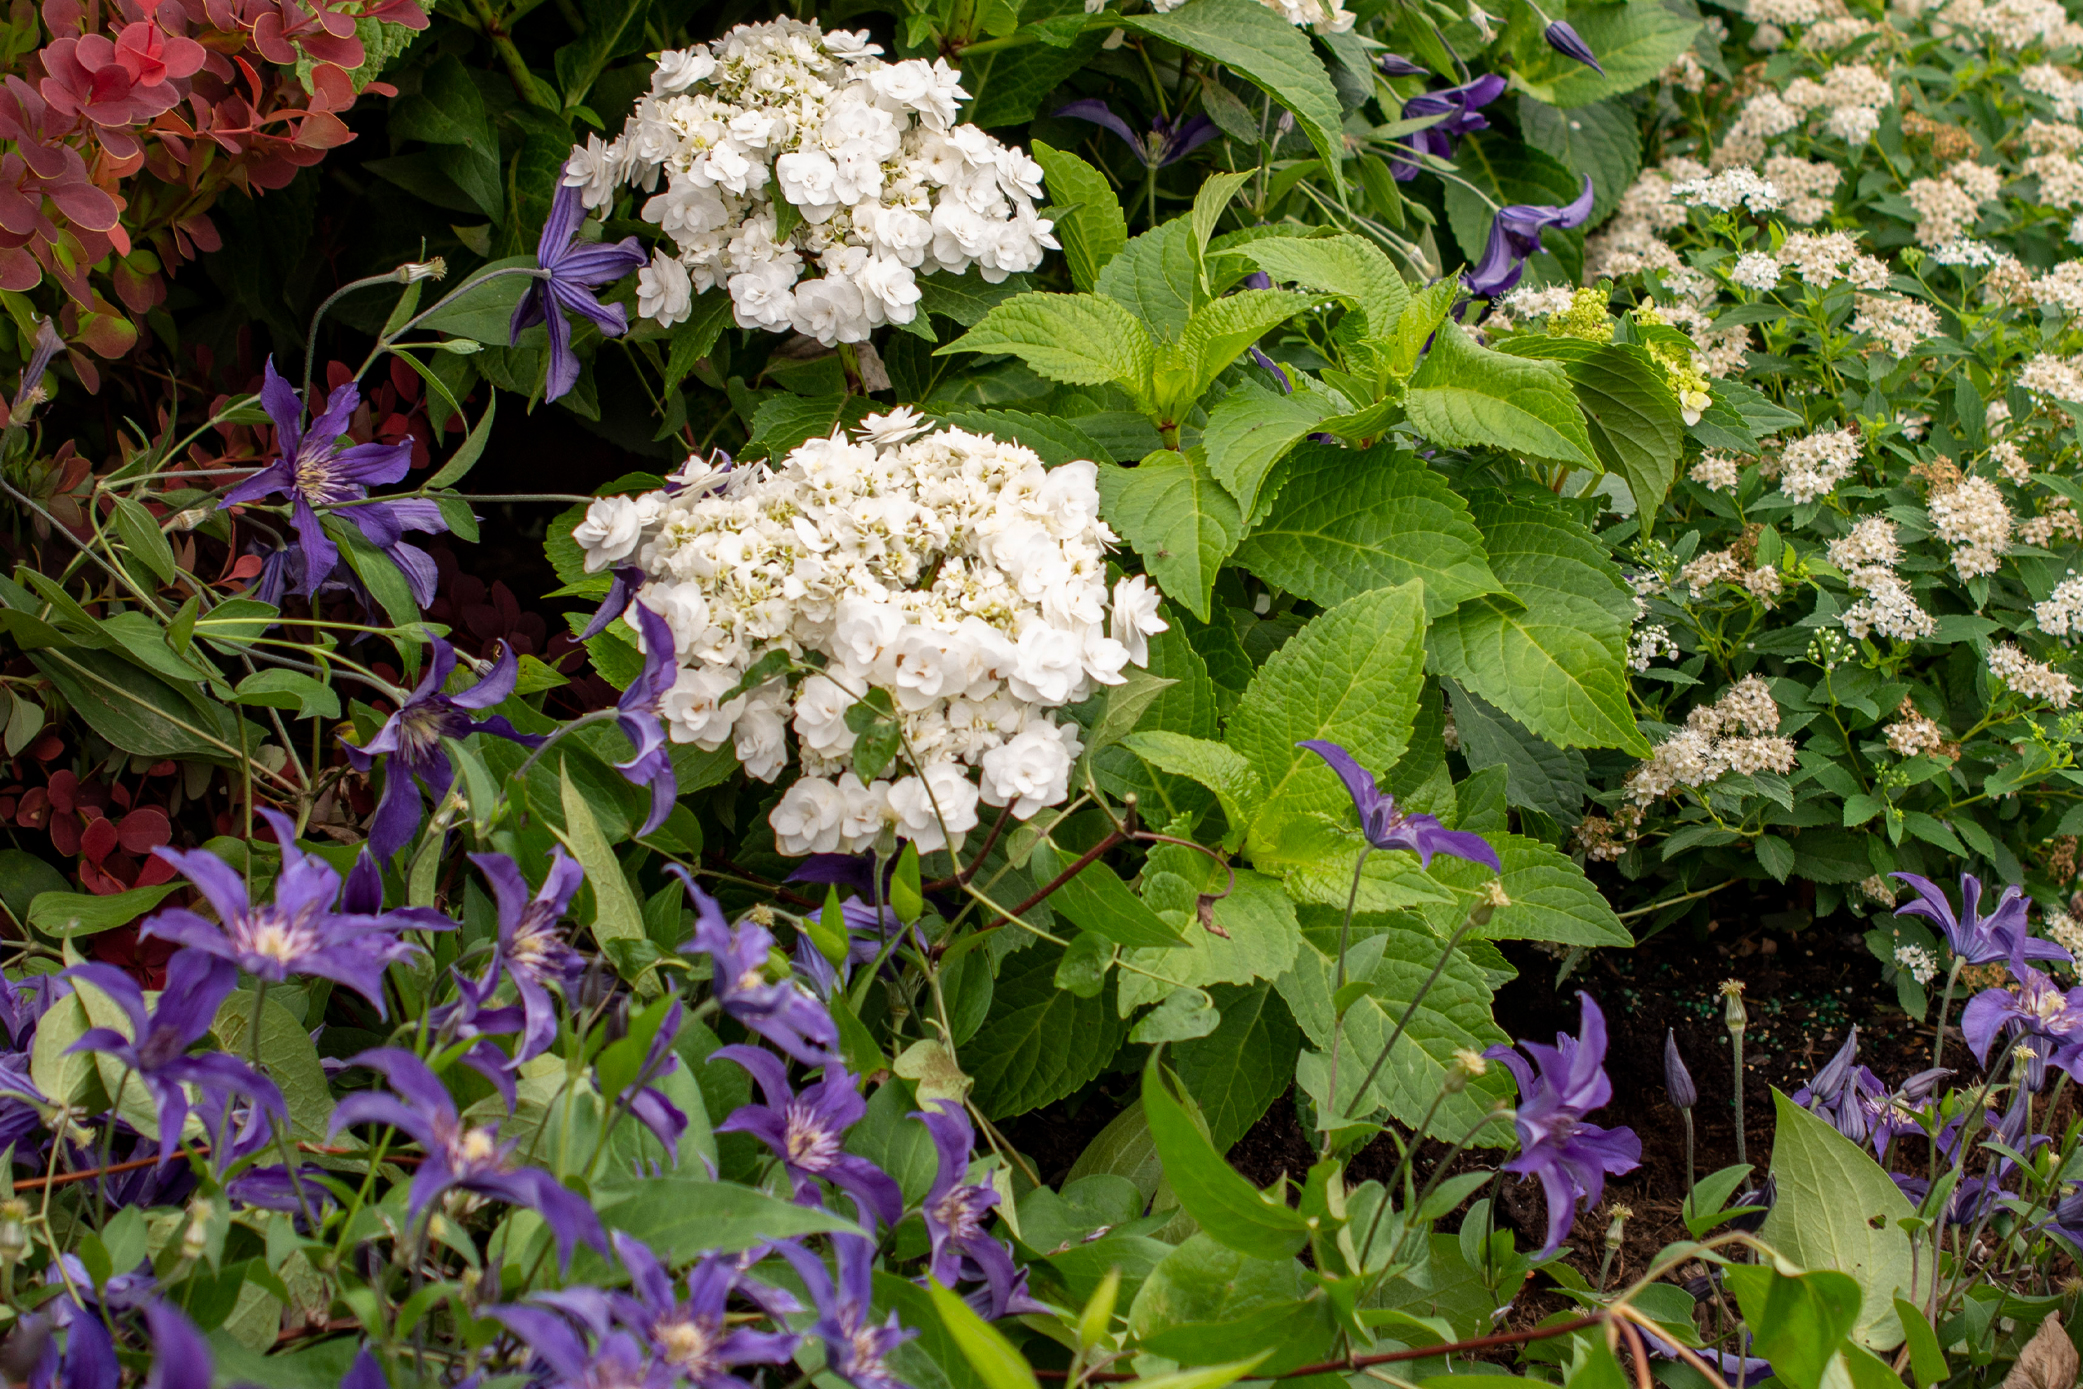 Clematis Sapphire Indigo™, Spiraea Yeti™, and Hydrangea Wedding Gown work well together to create the perfect display.